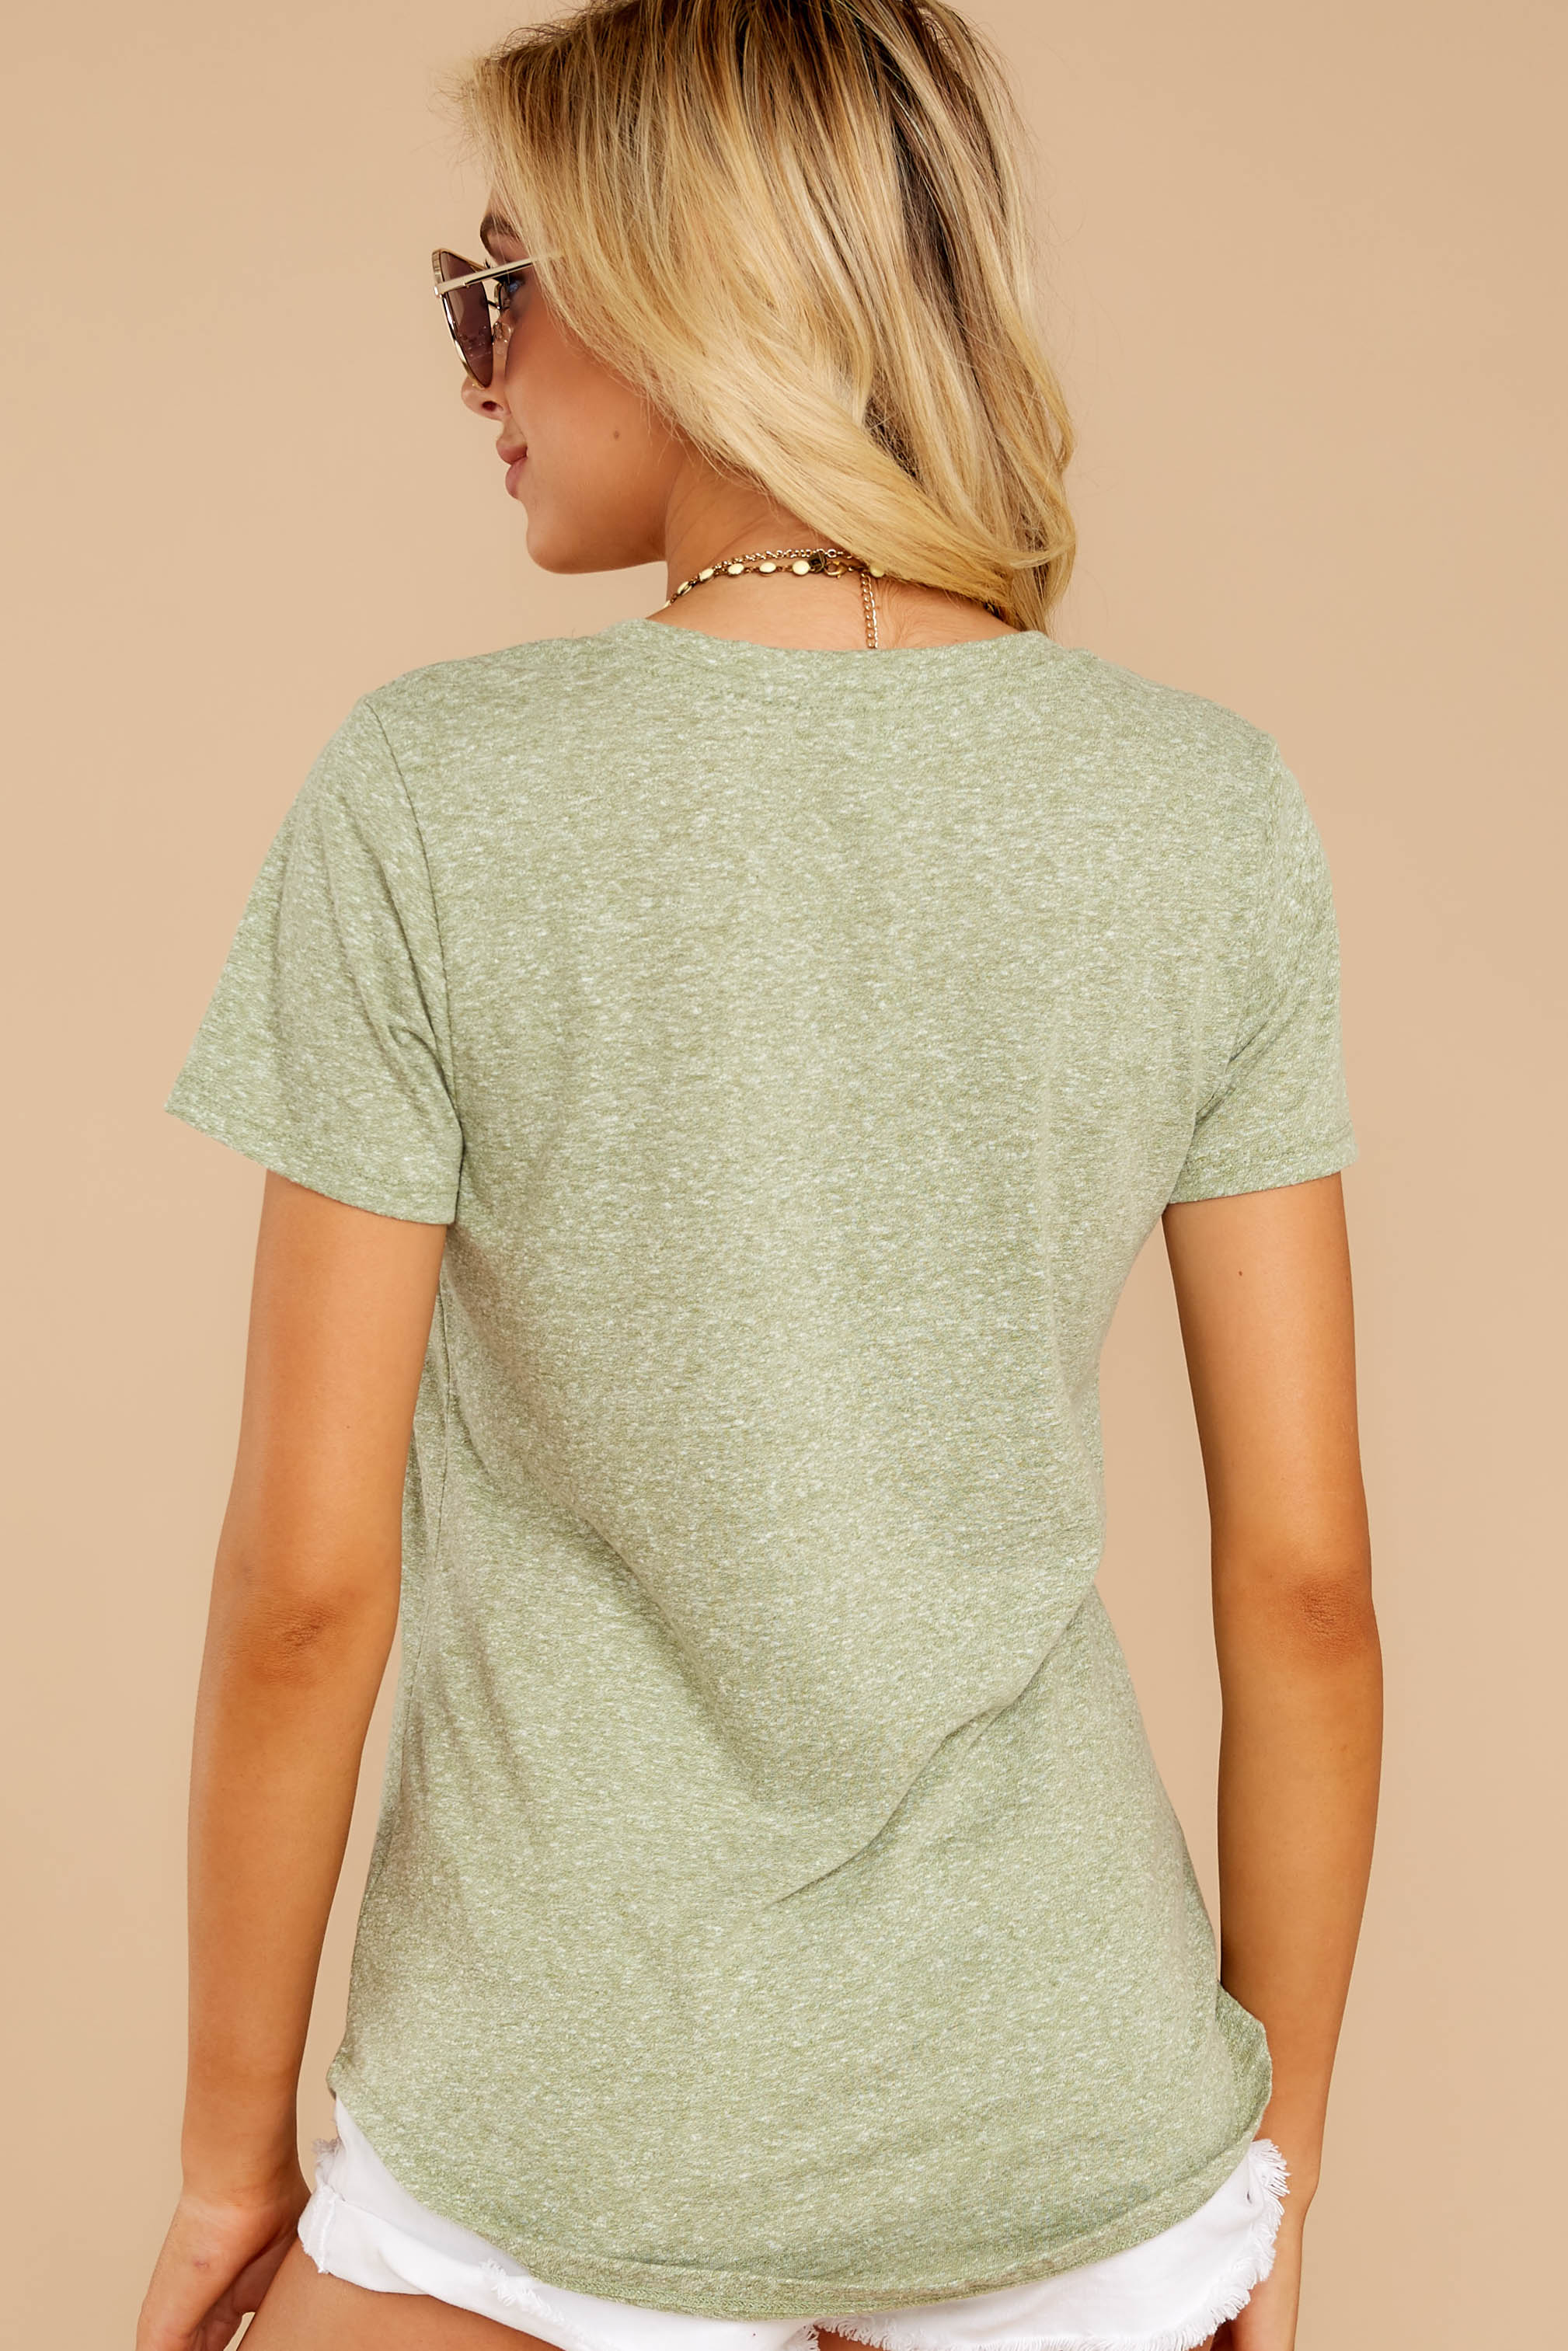 The Oil Green Triblend Pocket Tee